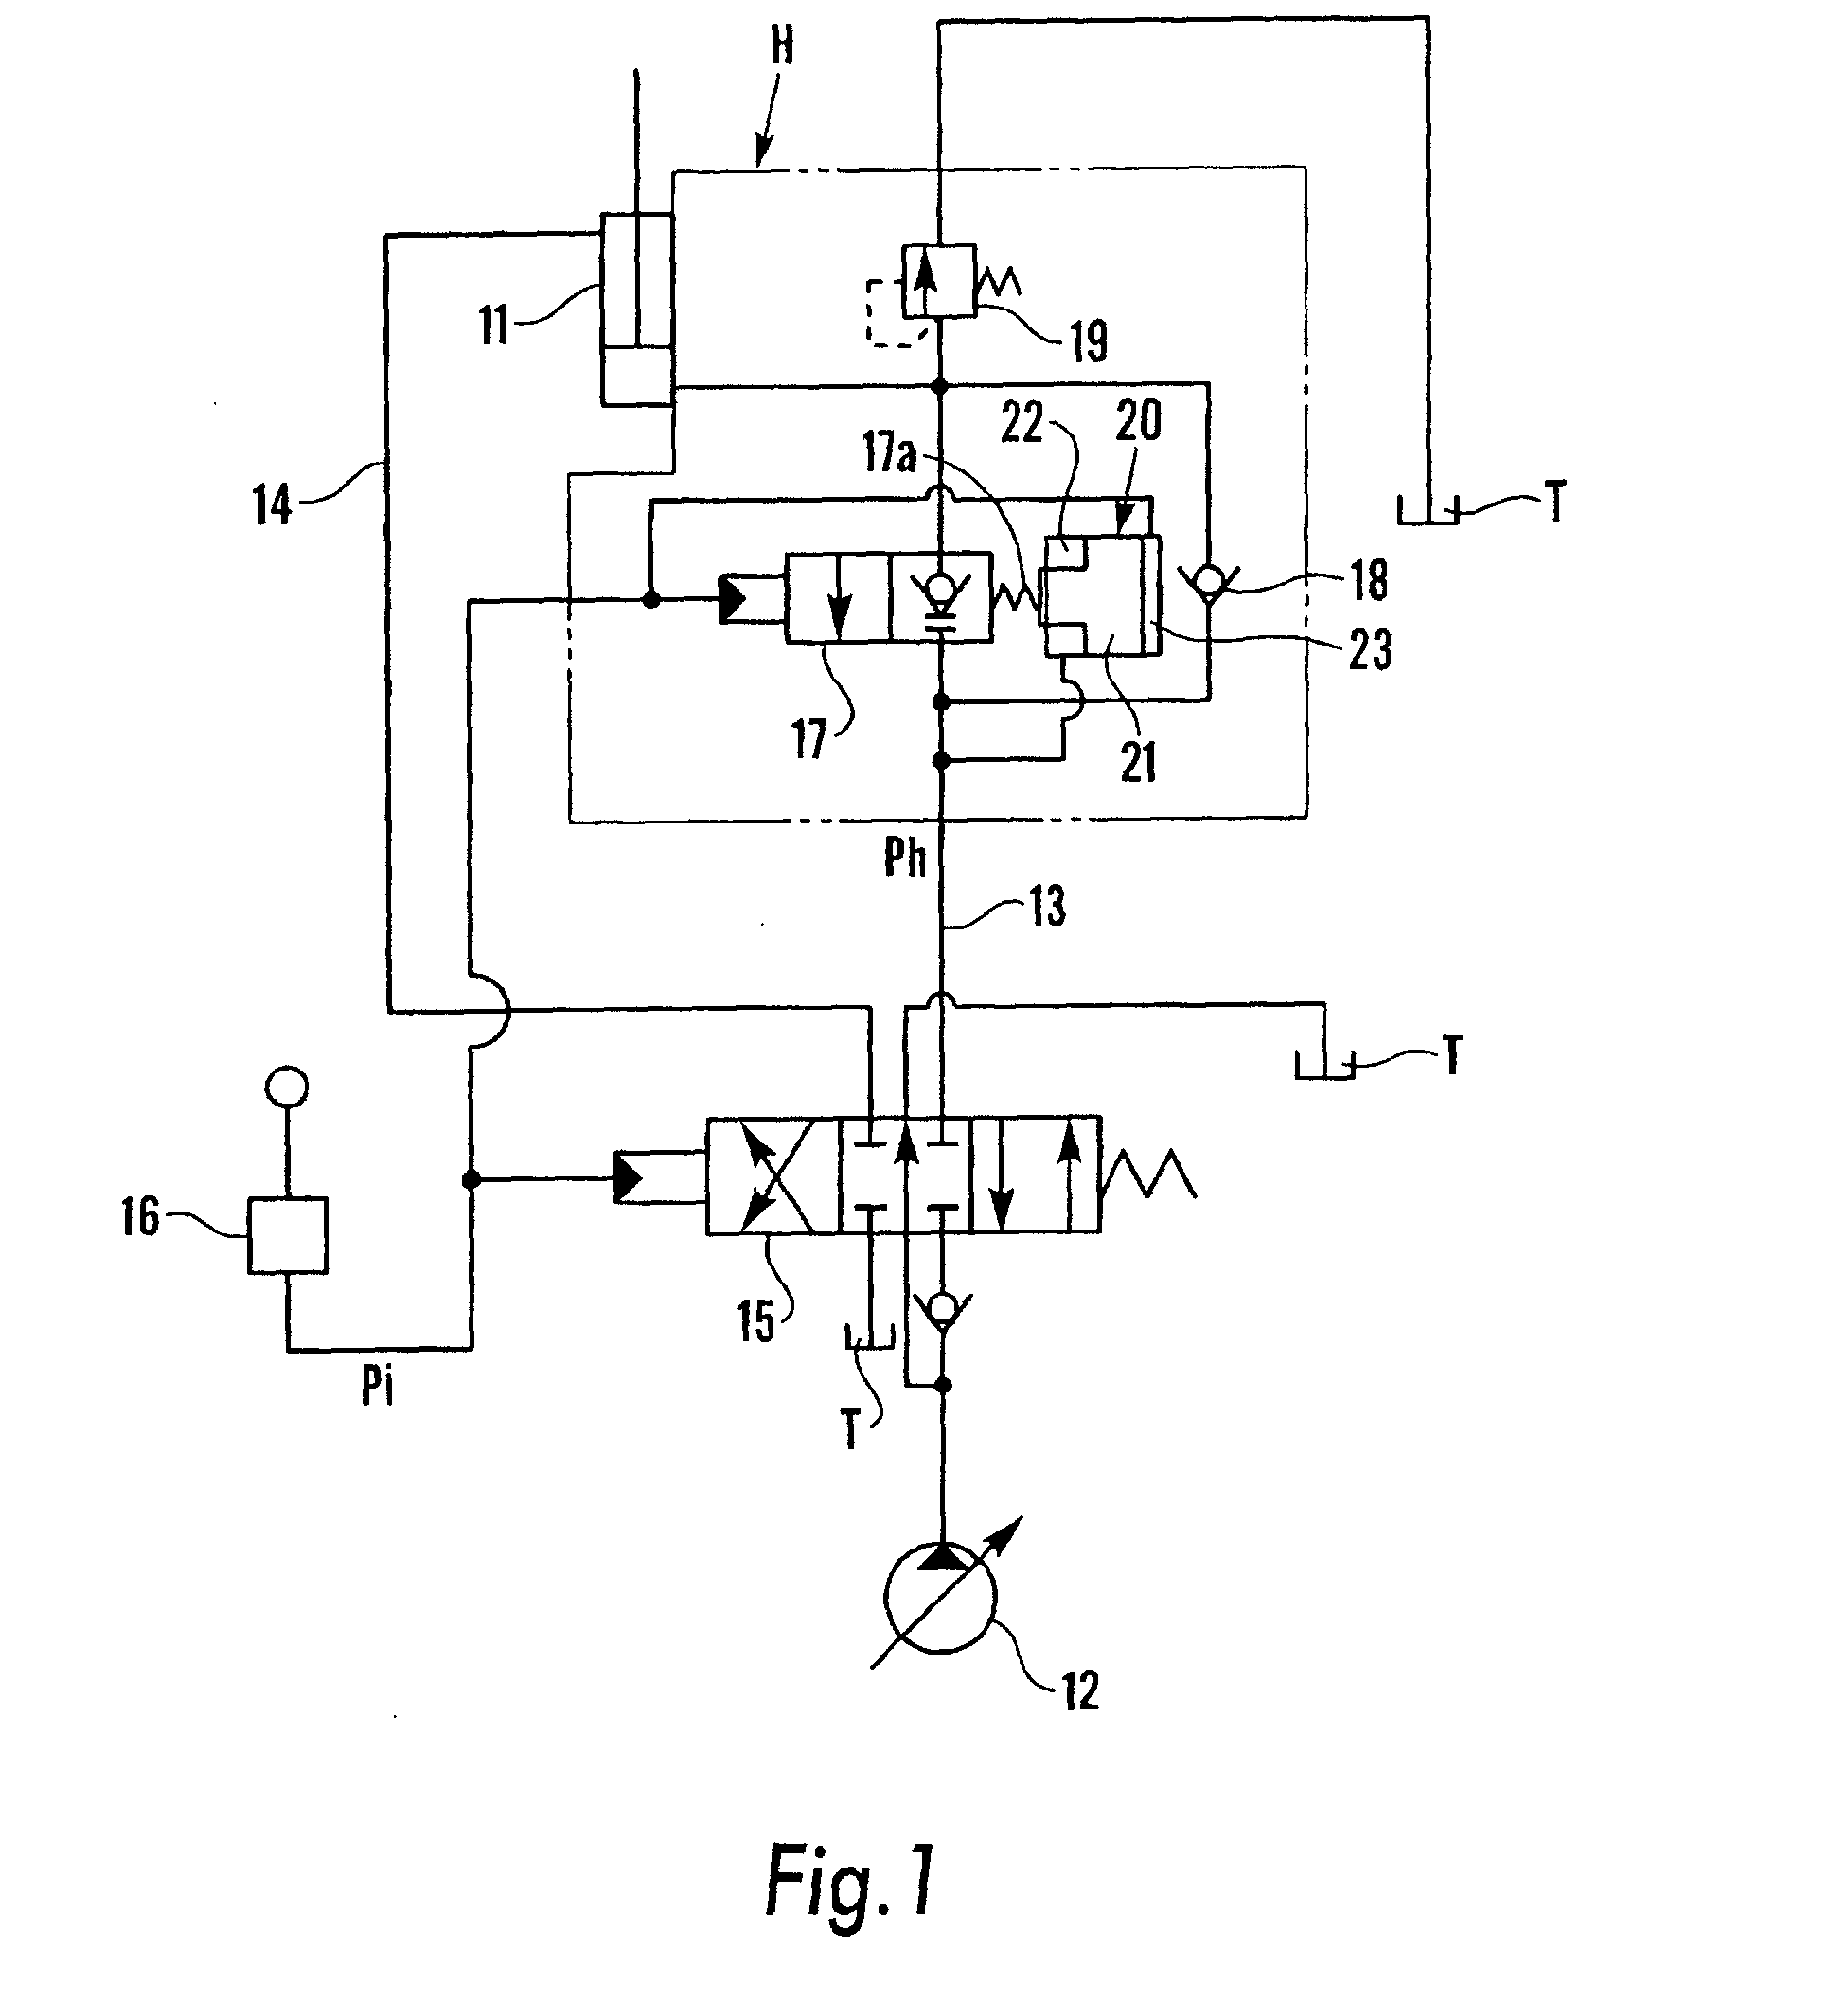 Patent ep1387089a2 hydraulic actuator circuit google patents patent drawing biocorpaavc Gallery